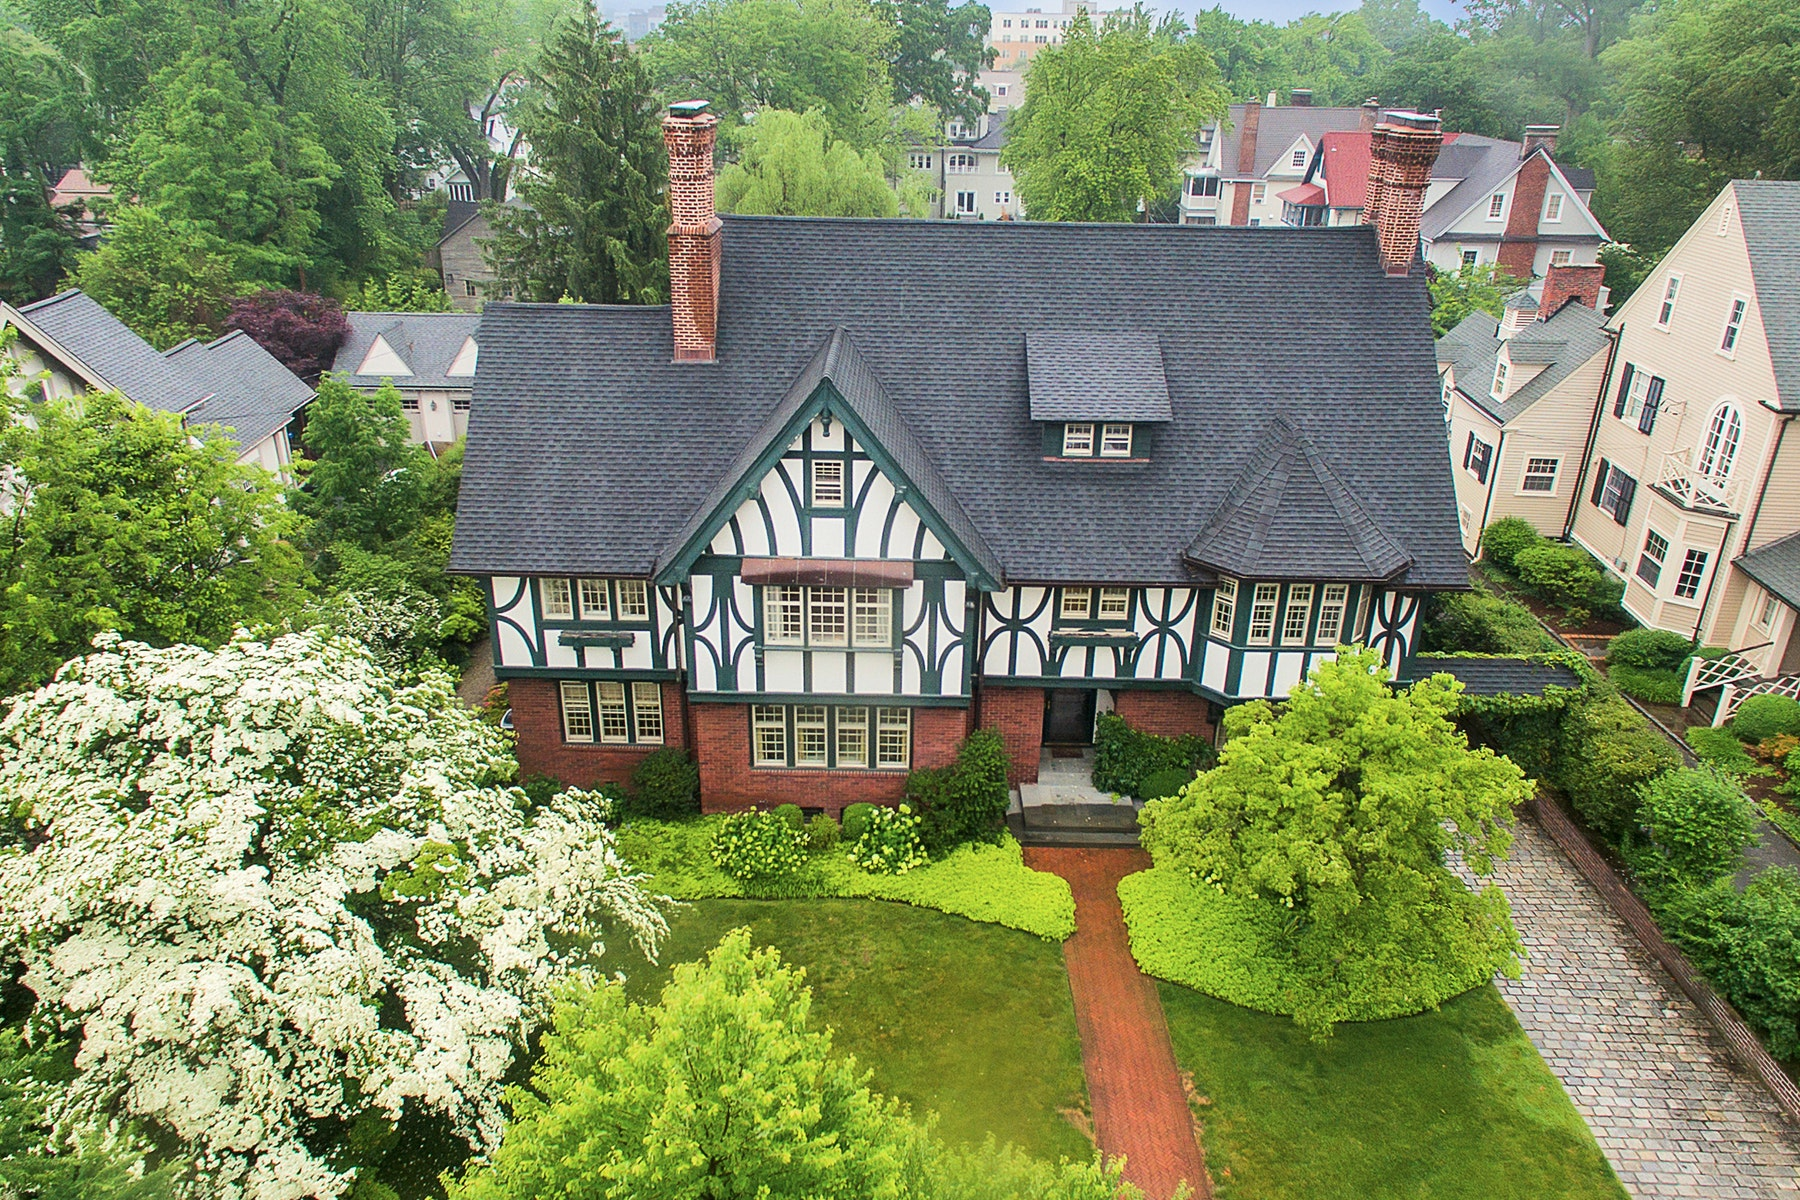 Single Family Homes for Sale at Stunning, Grand Tudor 105 Union Street Montclair, New Jersey 07042 United States